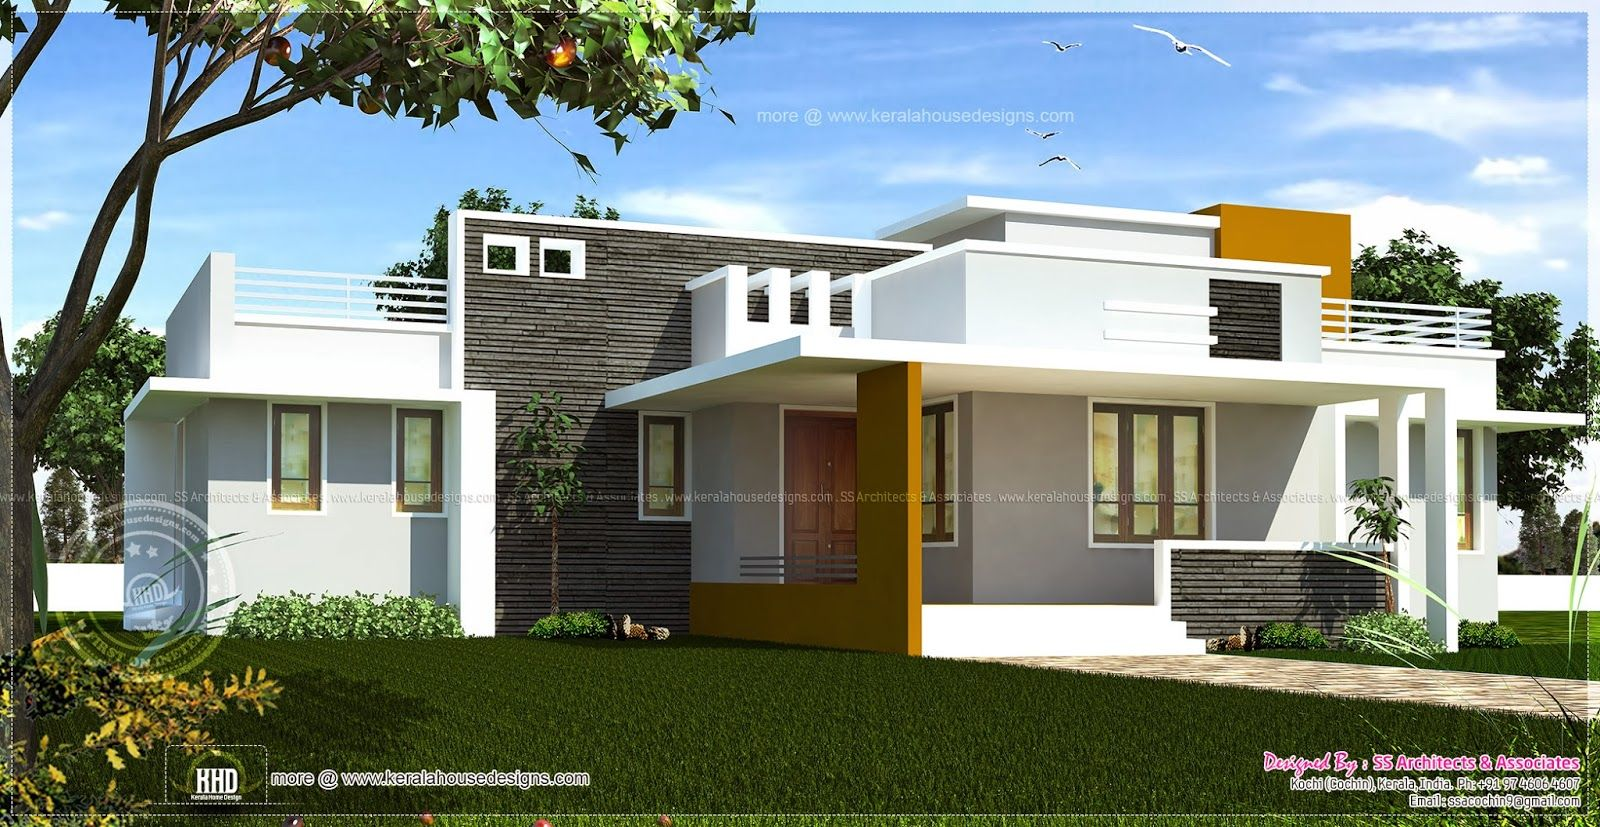 Excellent single home designs single floor contemporary for Kerala single floor house plans